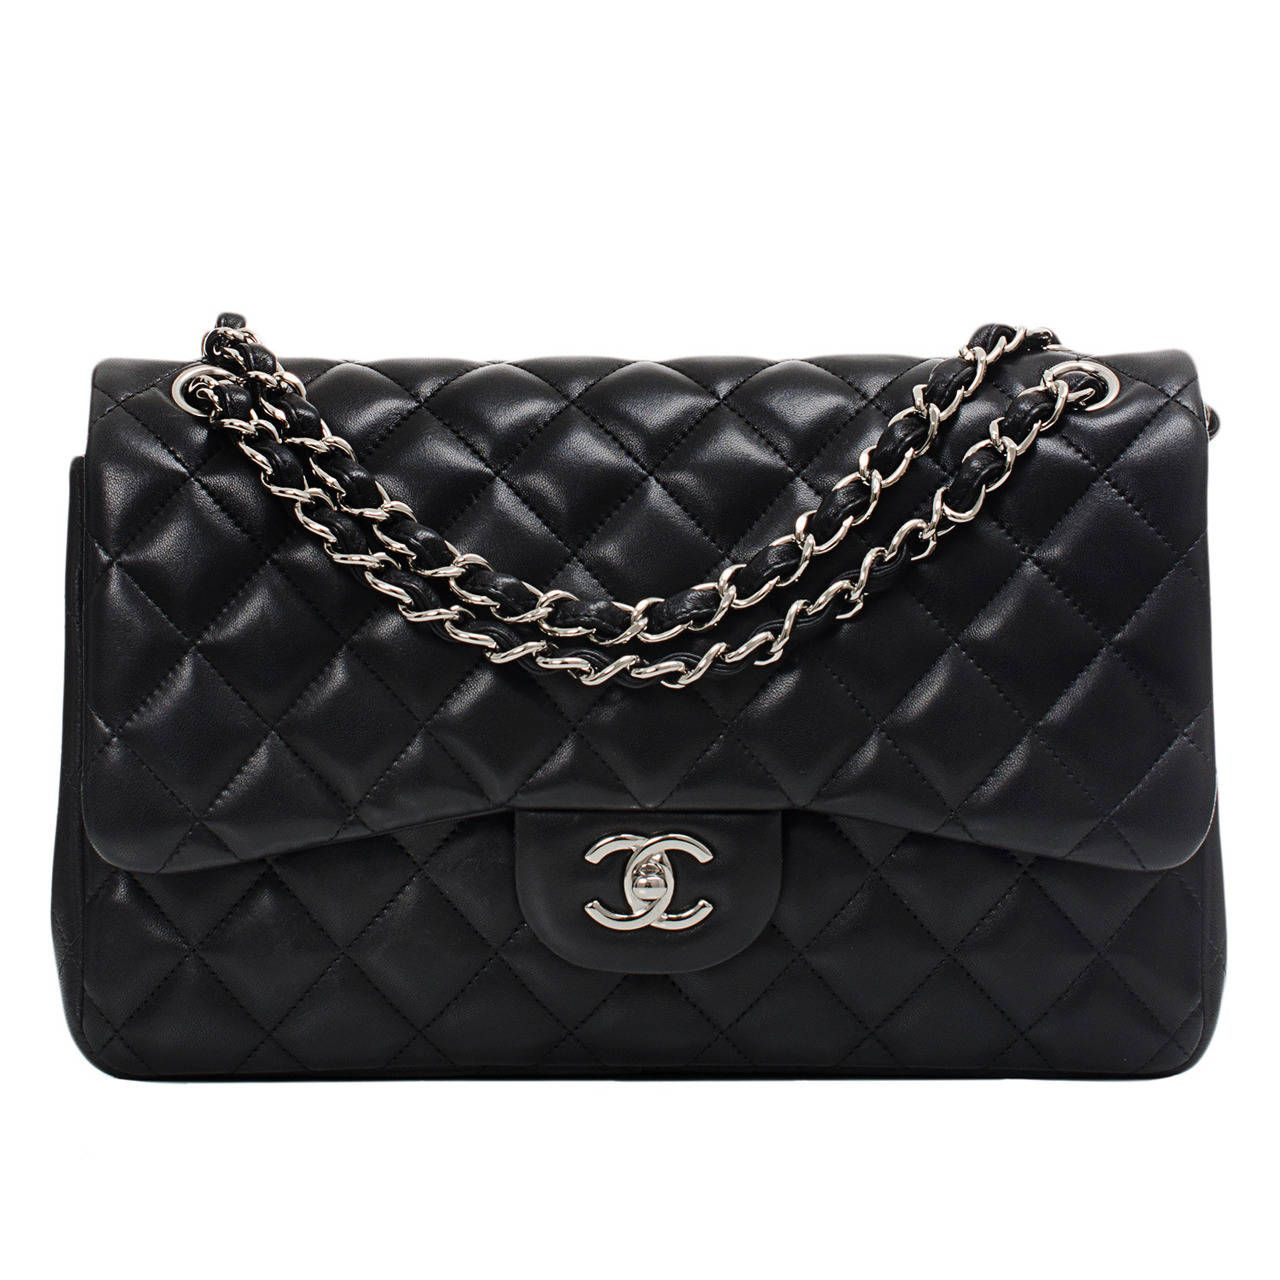 153136f5dd84 Chanel Black Quilted Lambskin Jumbo Classic Double Flap Bag